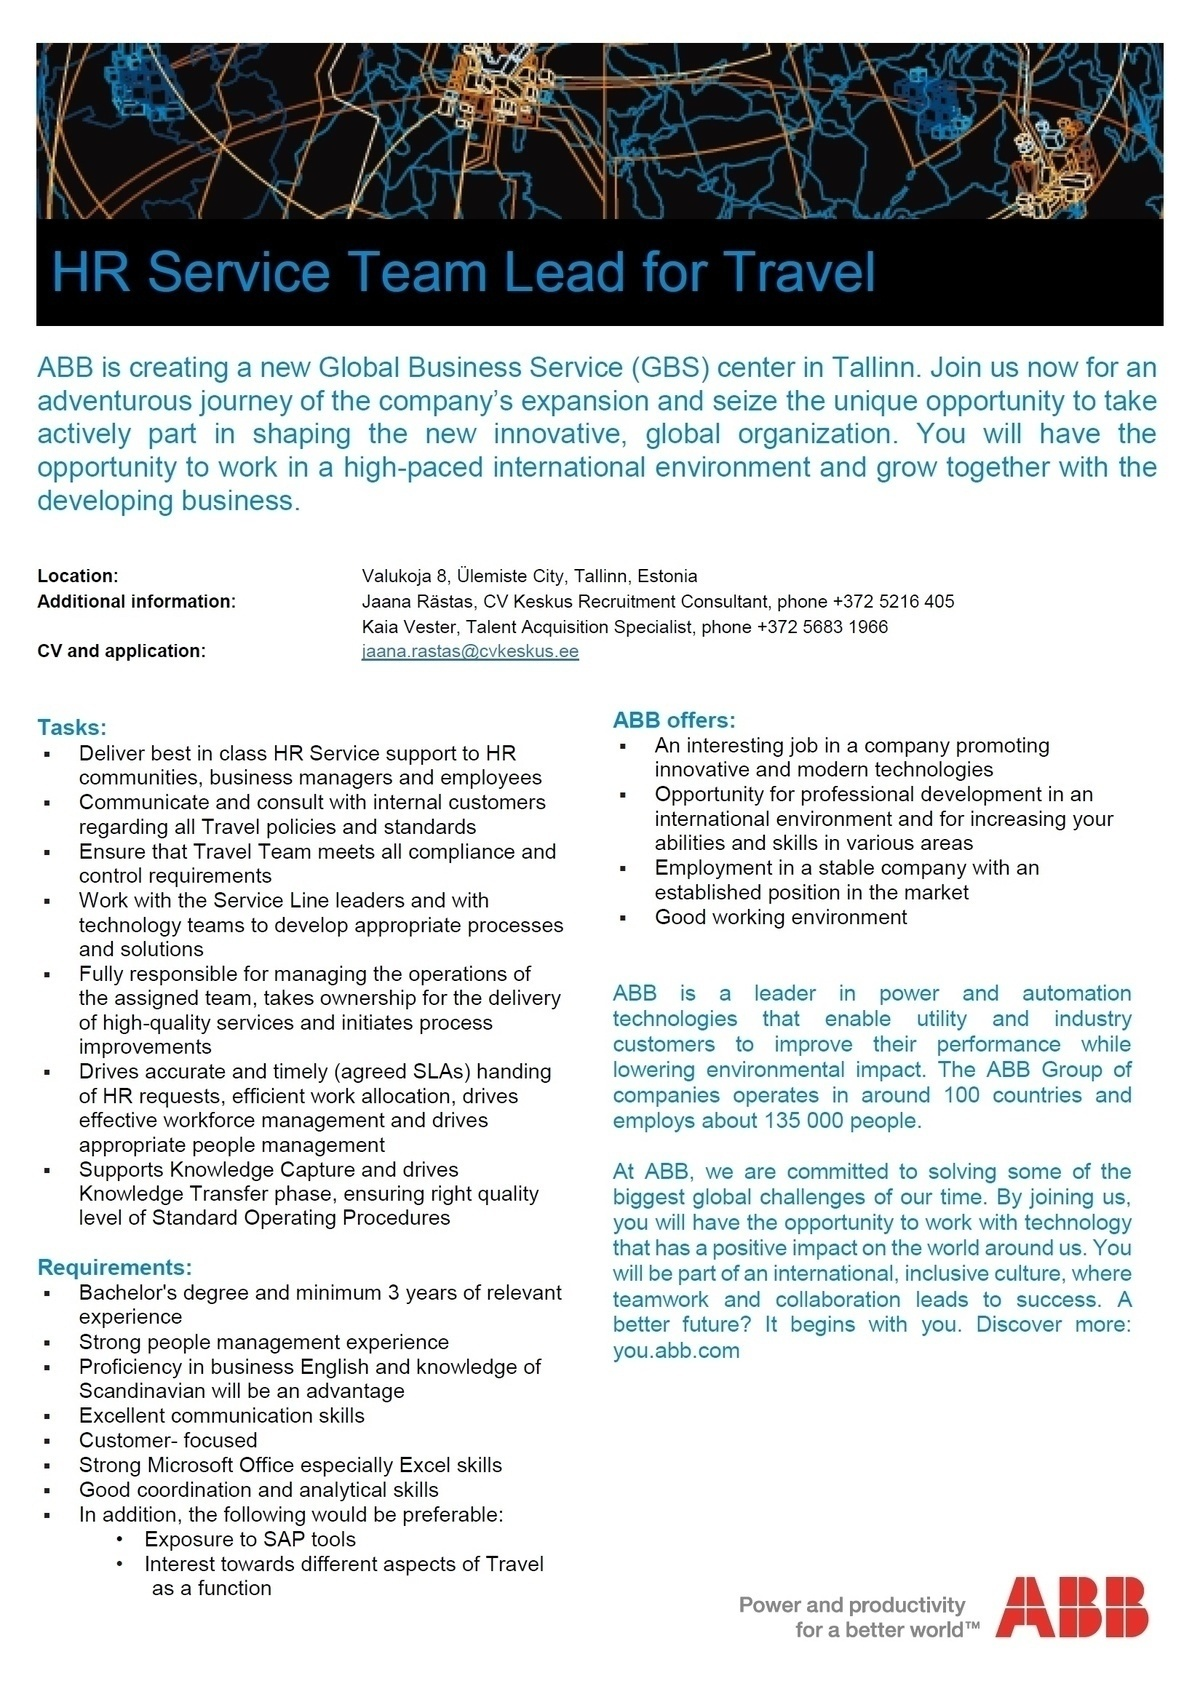 CVKeskus.ee klient ABB is looking for HR Service Team Lead for Travel